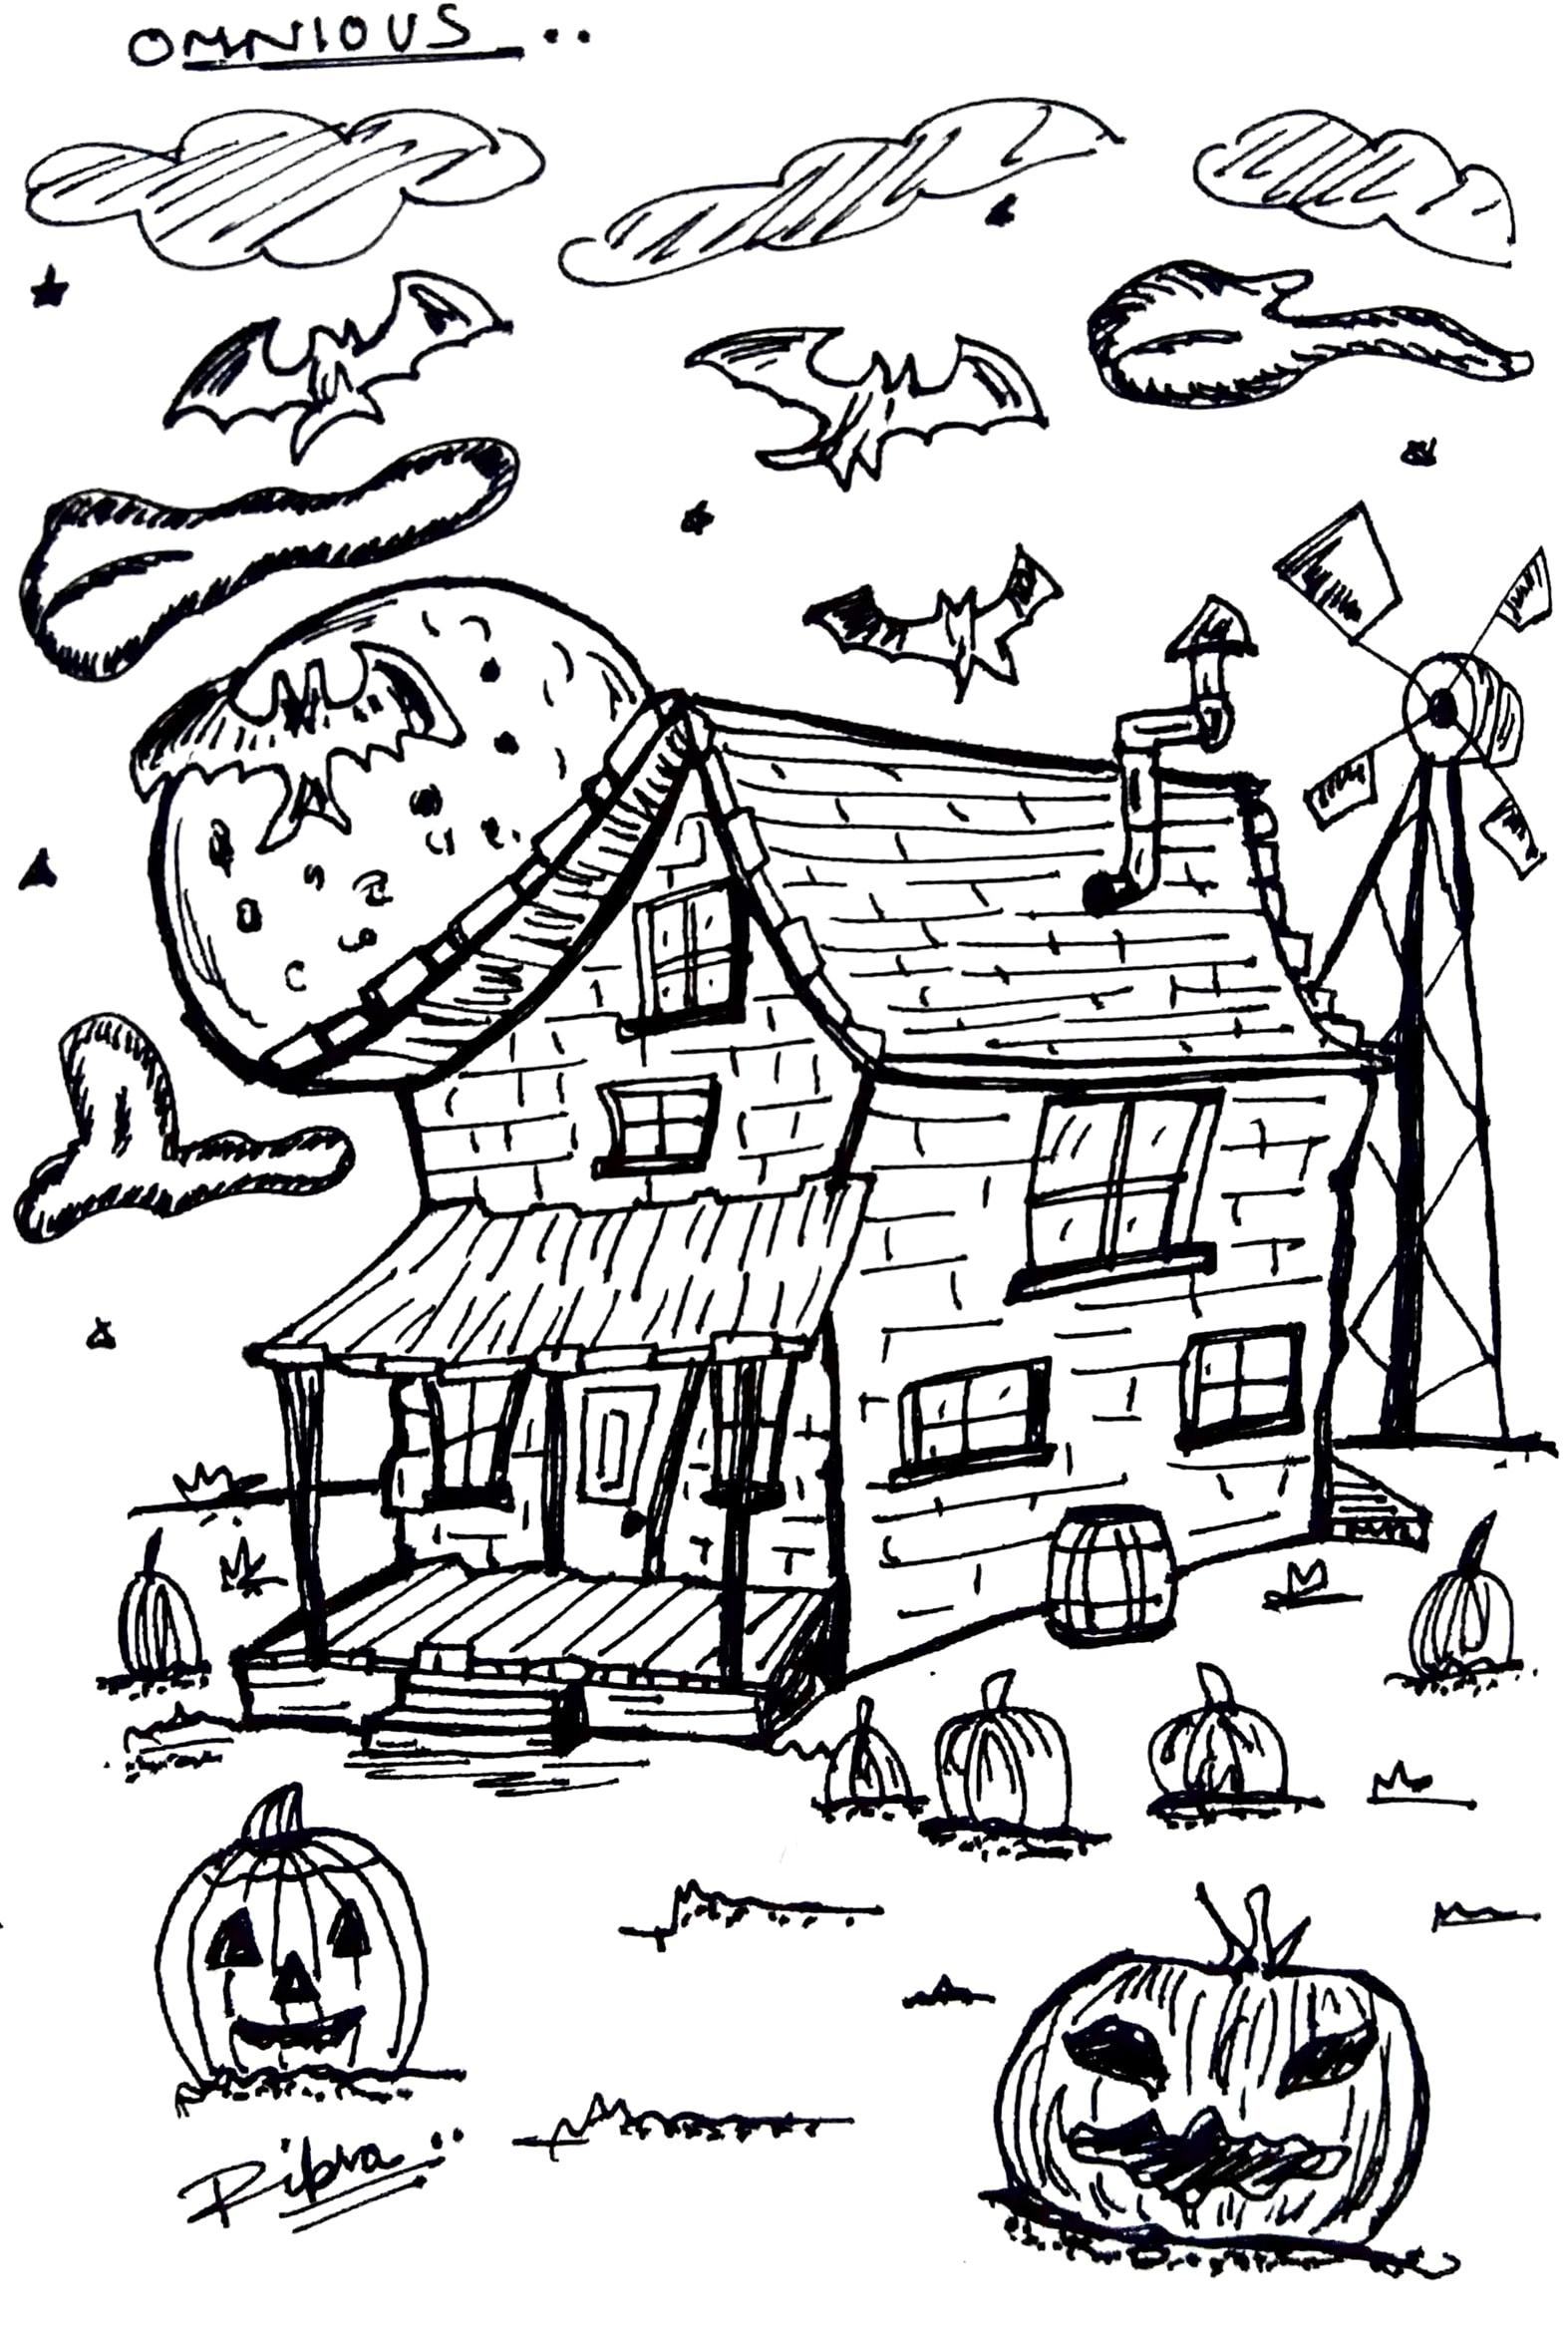 Courage The Cowardly Dog House : courage, cowardly, house, Halloween, 🎃...., Courage, Cowardly, Dog's, House, Ripsa, Sketches